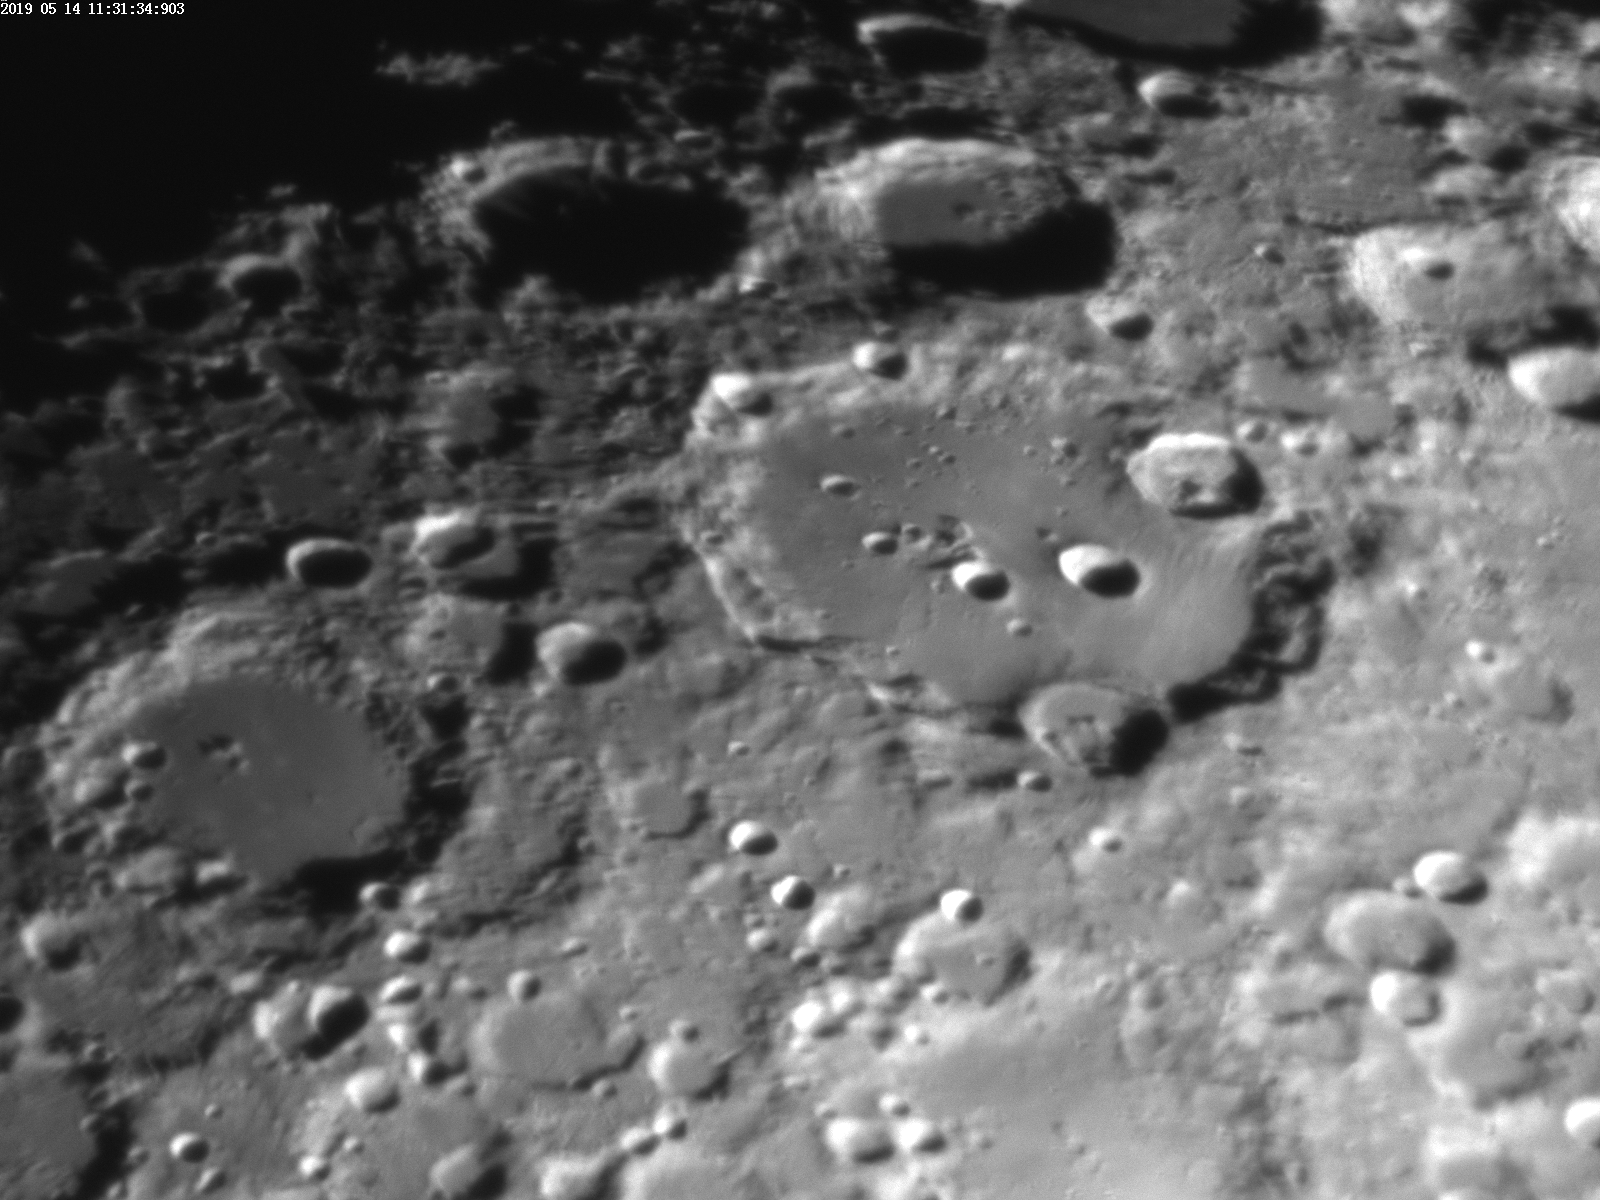 Moon_00030 11_31_35Z.png